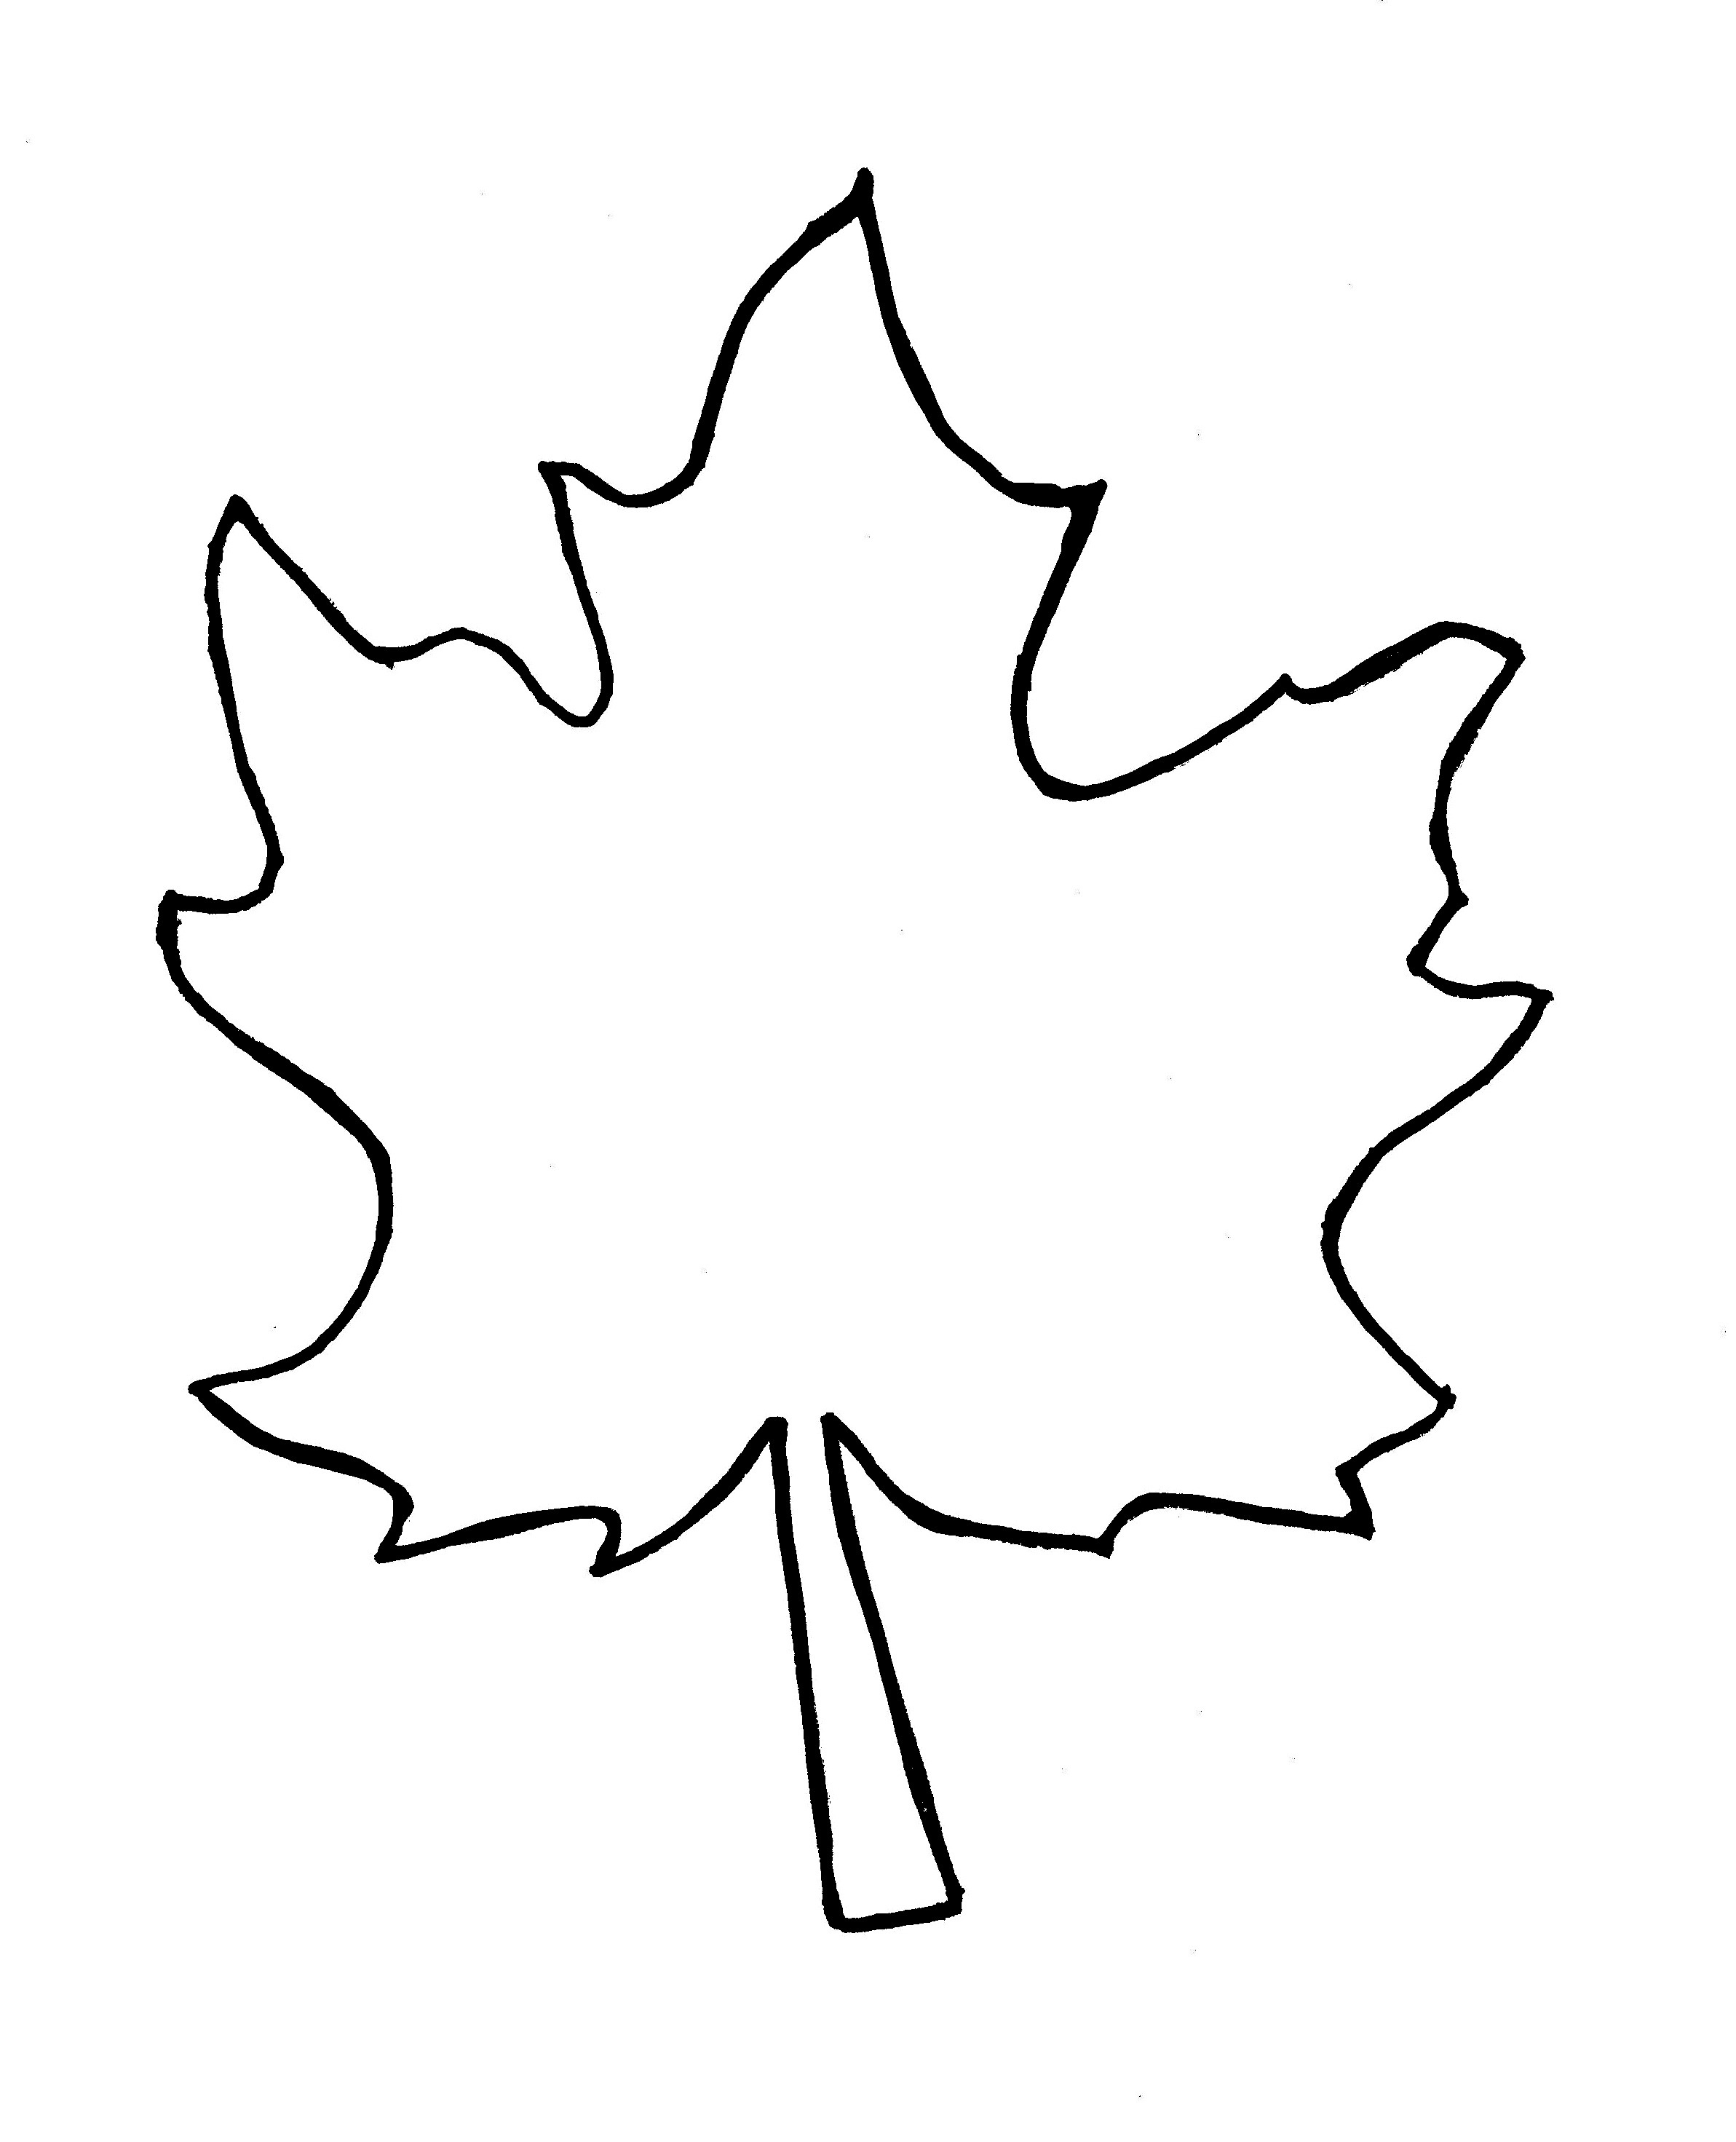 Coloring Pages: Coloring Color Of Fall Leaves Free Printable - Fall Leaves Pictures Free Printable